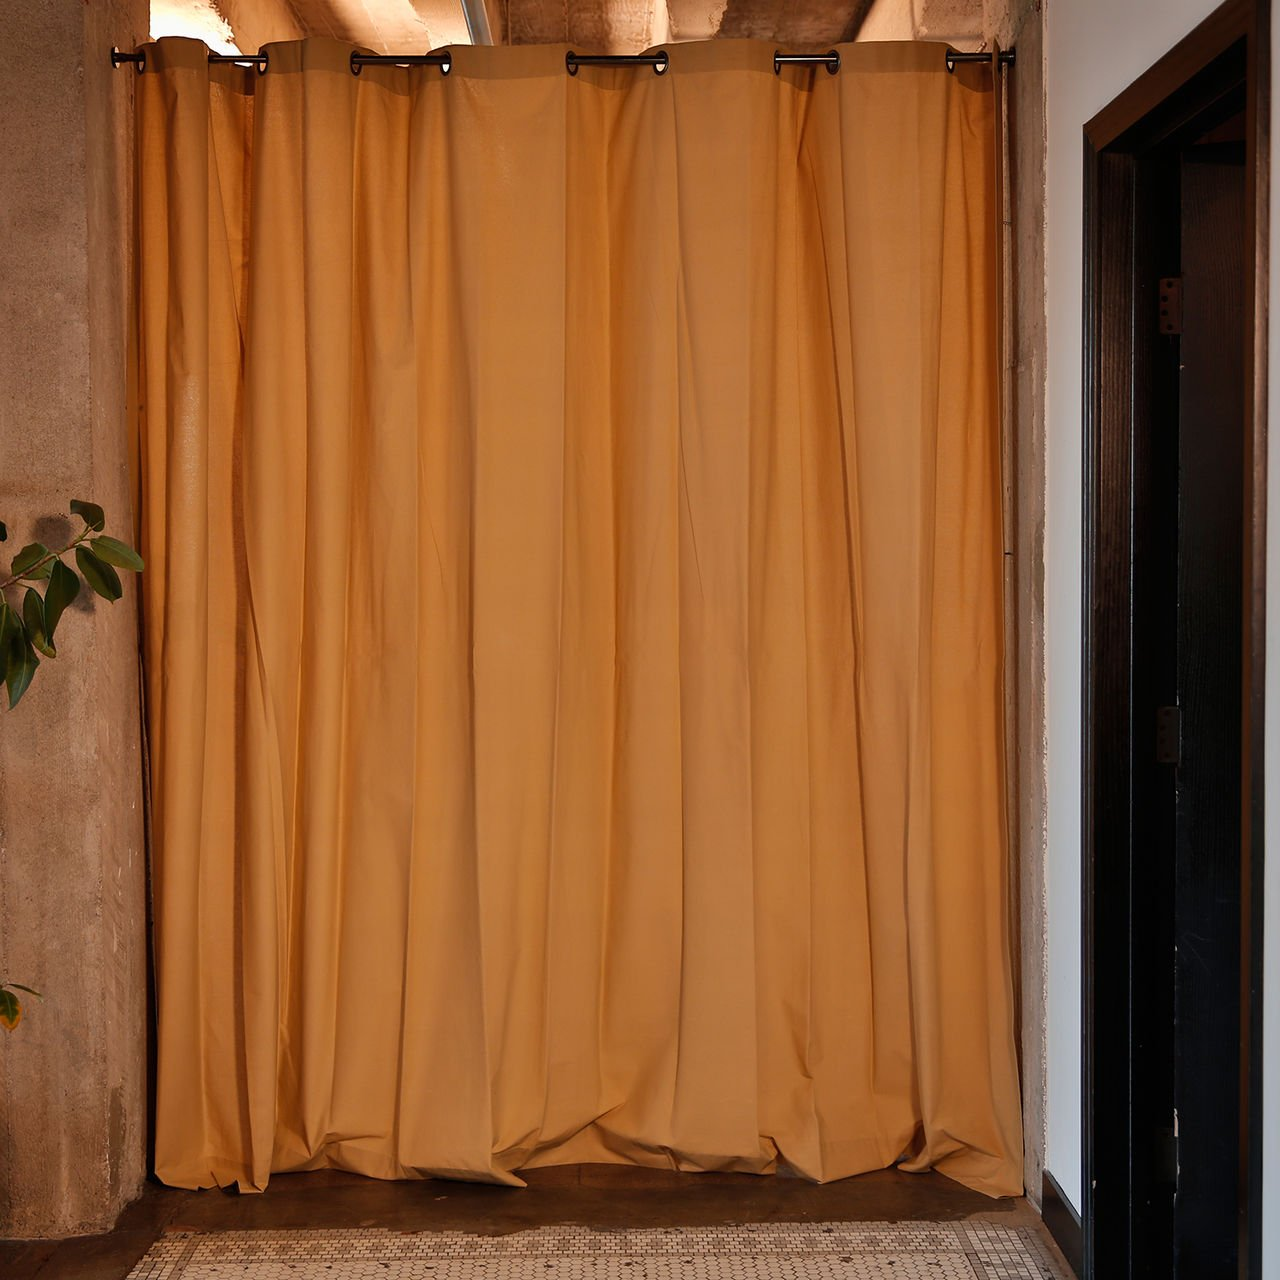 Amazon.com: RoomDividersNow Muslin Room Divider Curtain, 8ft Tall x 10ft  Wide (Wheat): Kitchen & Dining - Amazon.com: RoomDividersNow Muslin Room Divider Curtain, 8ft Tall